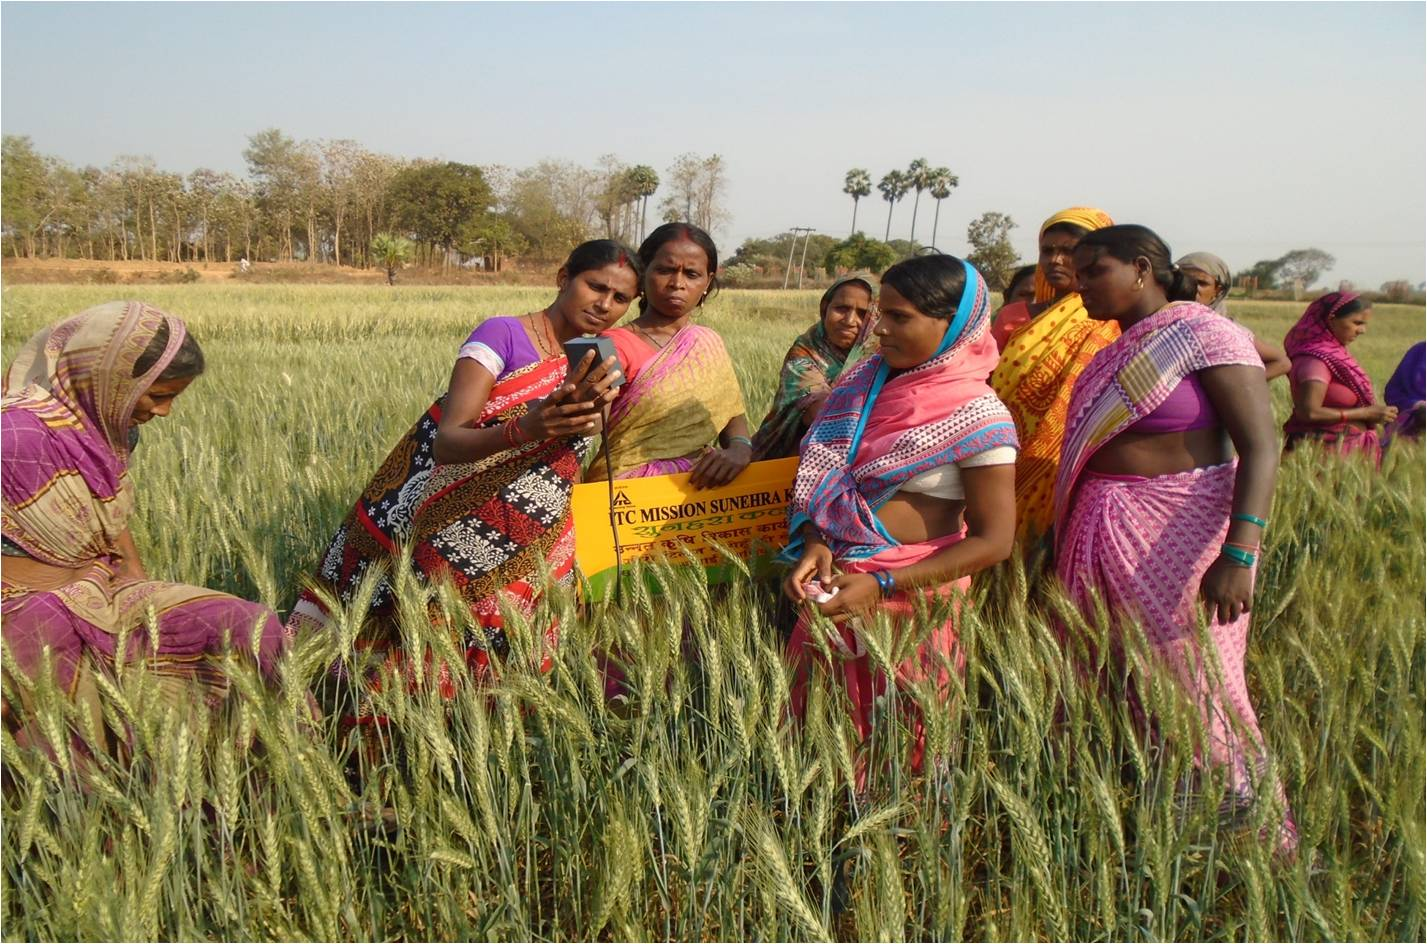 Women farmers in Munger India. (Photo: ITC)